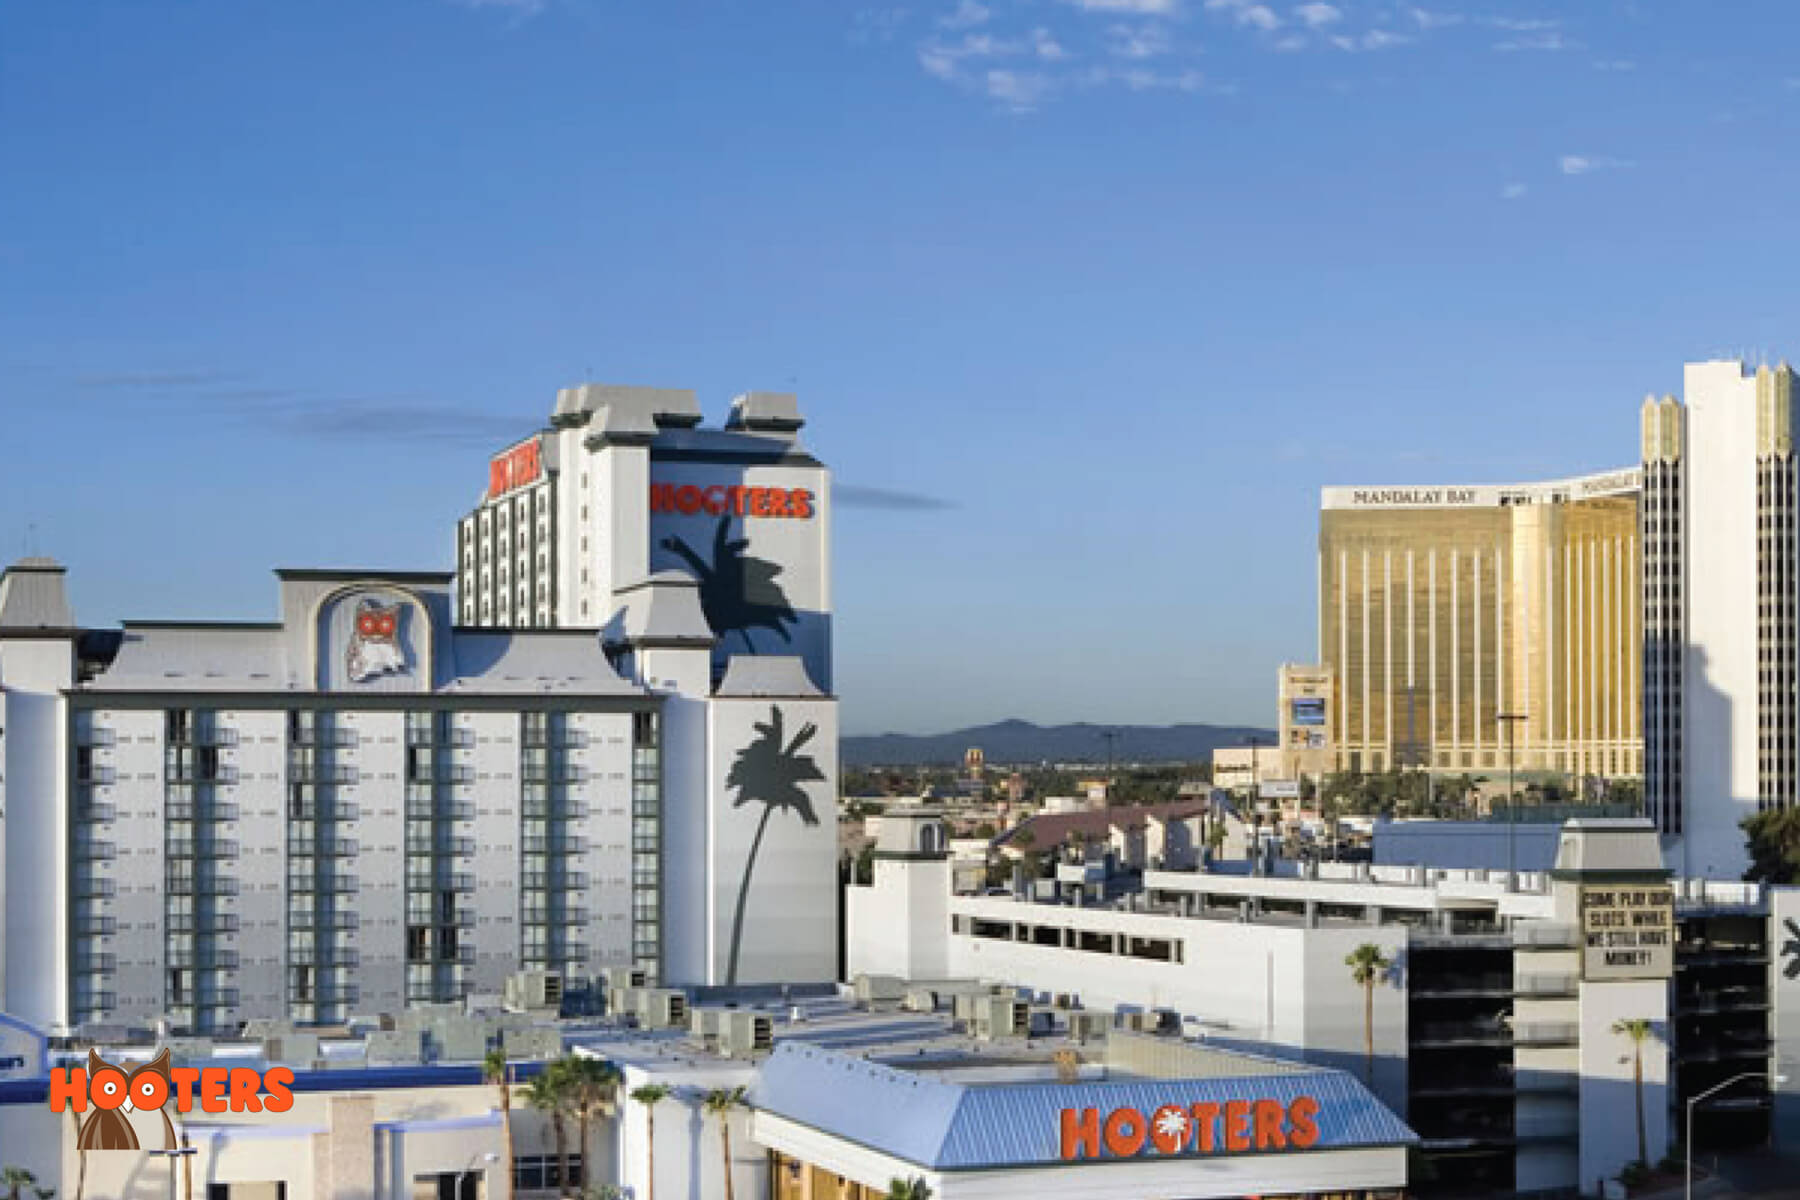 Hooters Casino Hotel - Las Vegas, NV